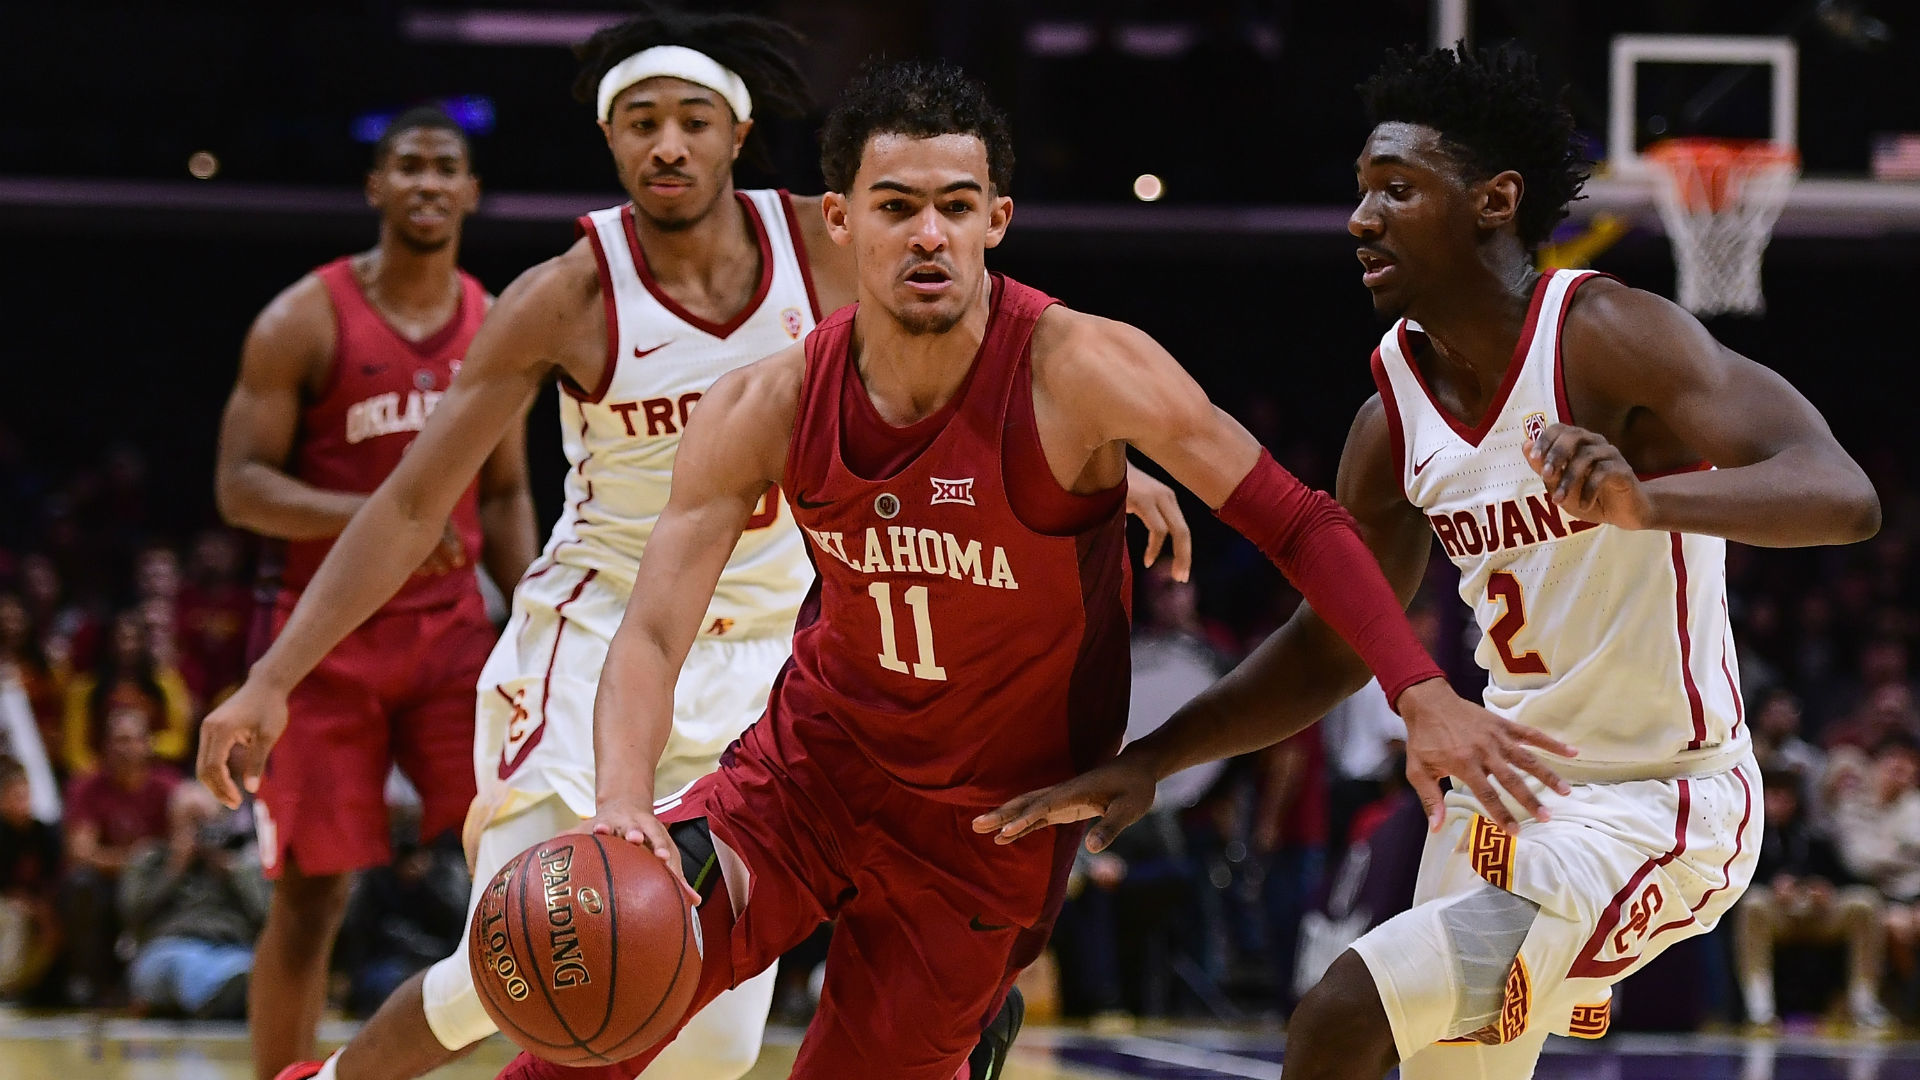 Freshmen showdown/Sexton, Young face off as Alabama hosts Oklahoma — COLLEGE BASKETBALL